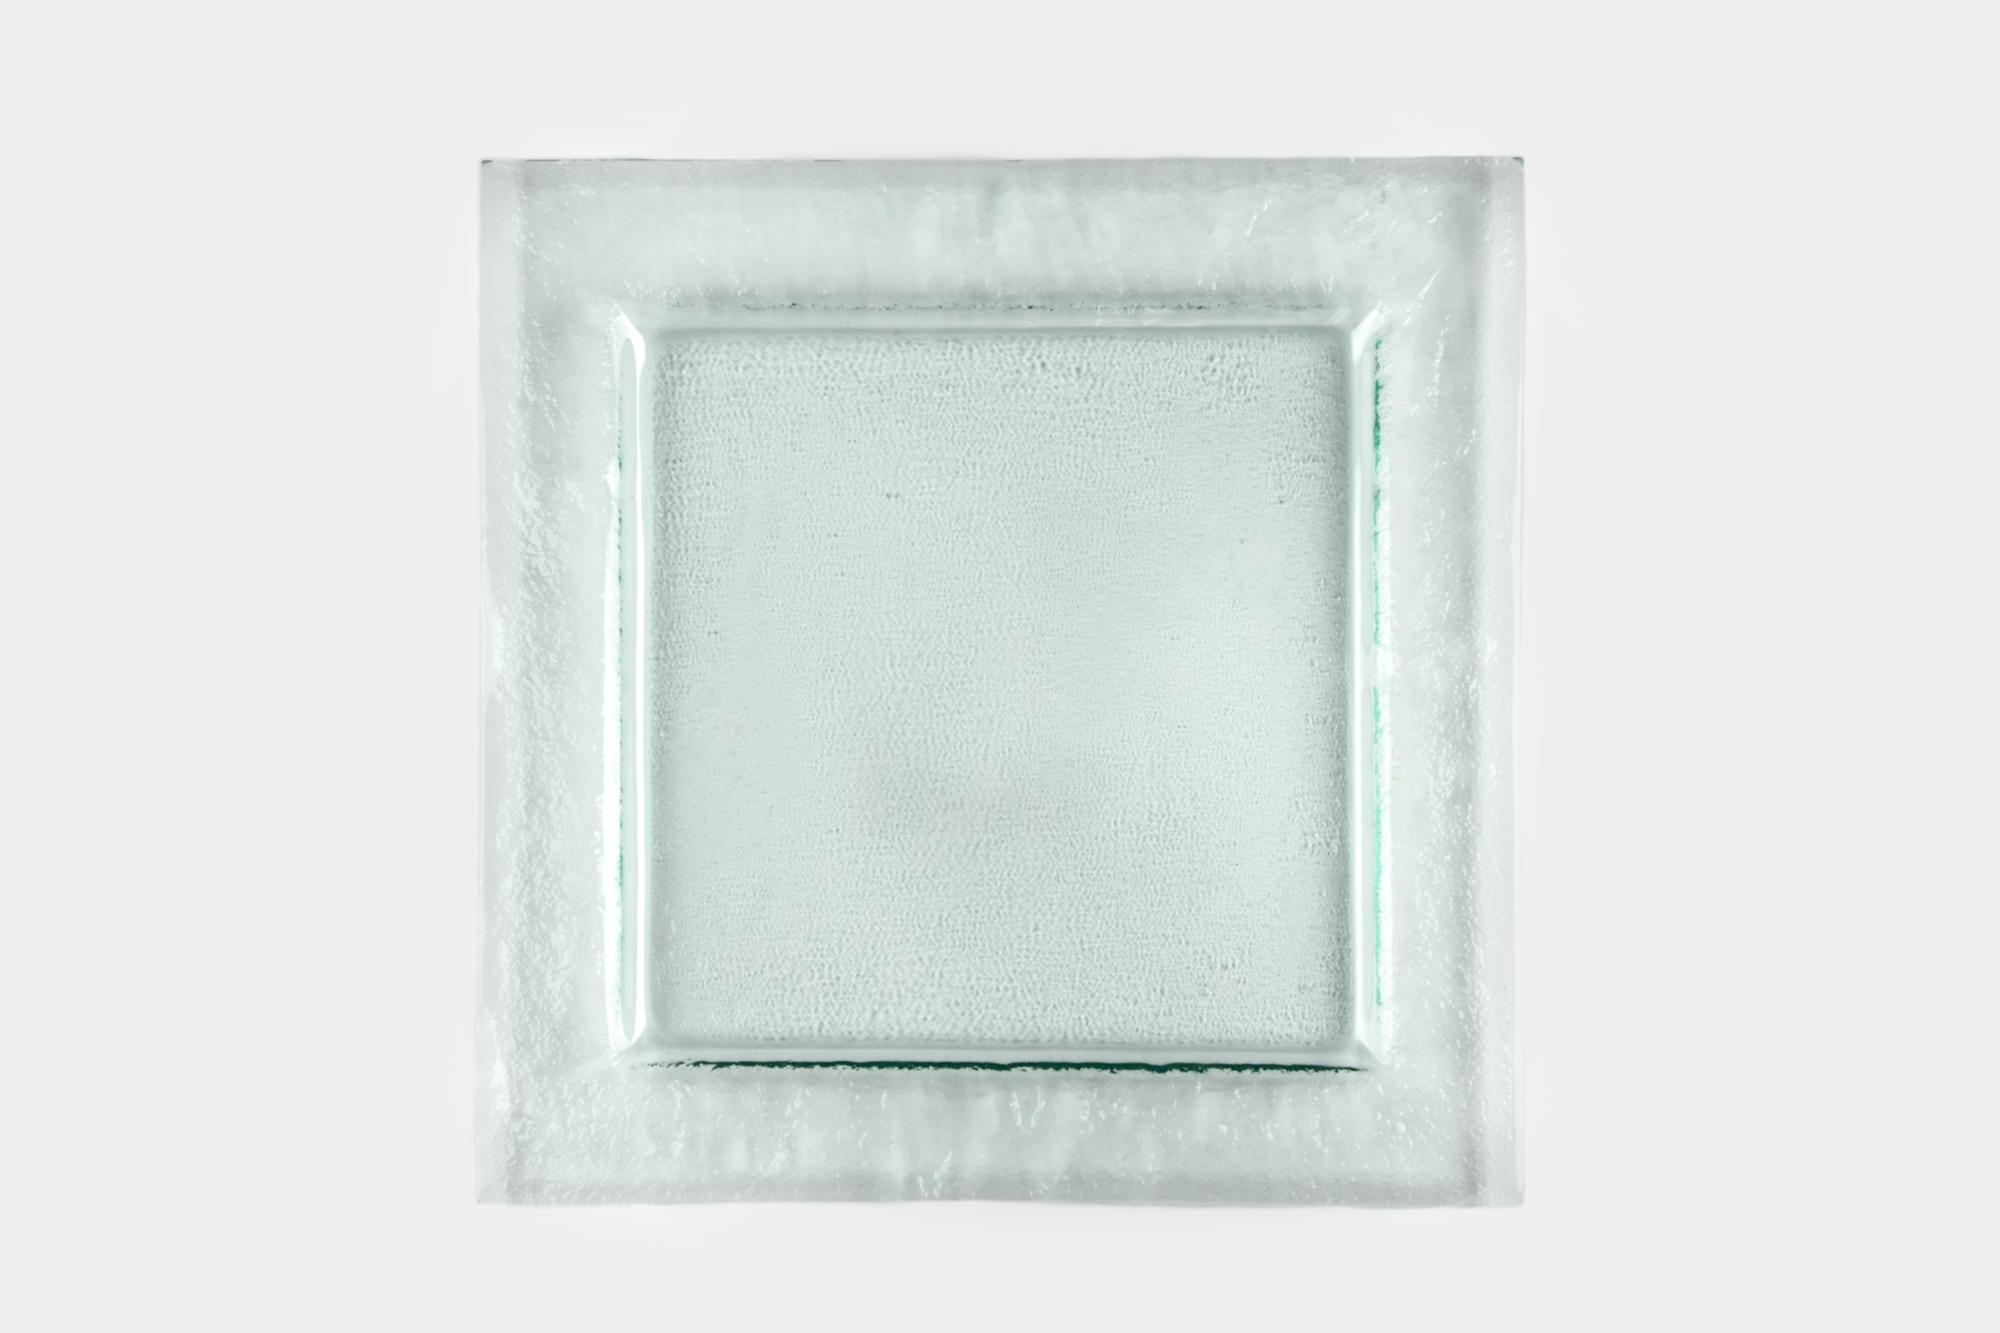 Square glass charger - Image 0